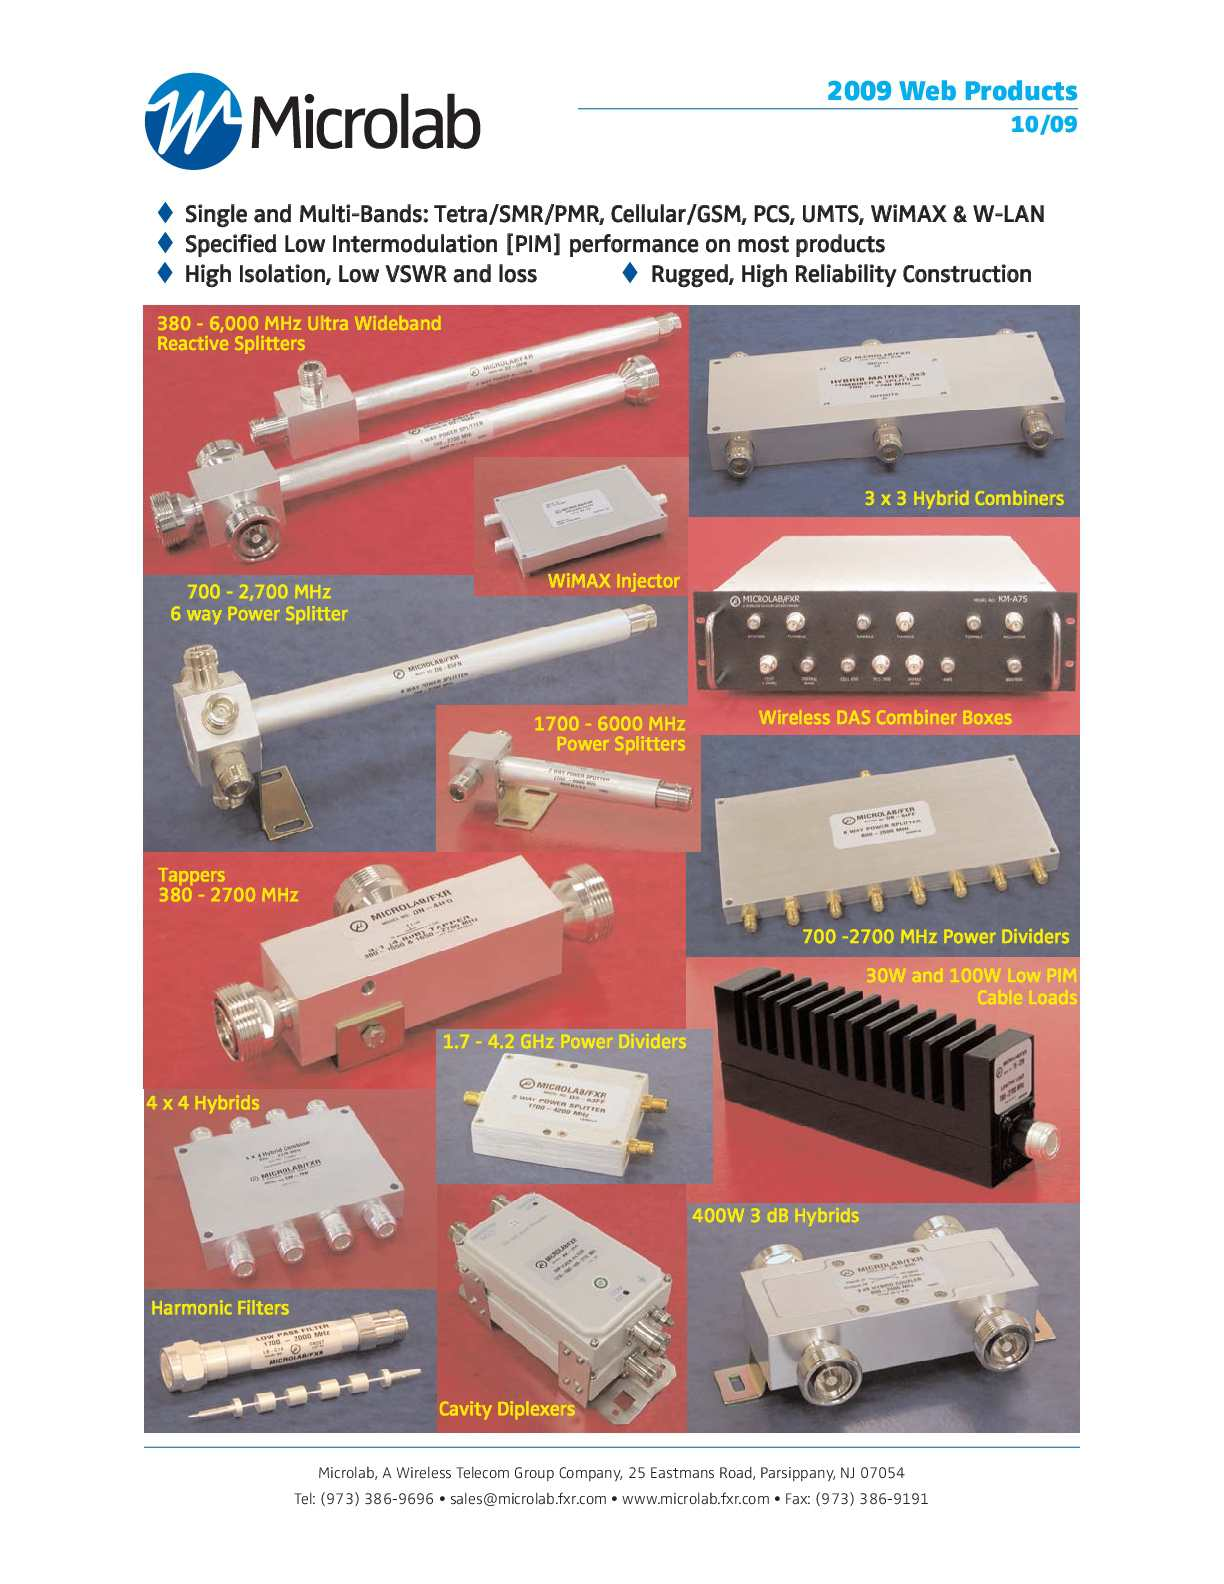 NEW MICROLAB DN-84FN COAXIAL MULTI-BAND UNEQUAL SPLITTER